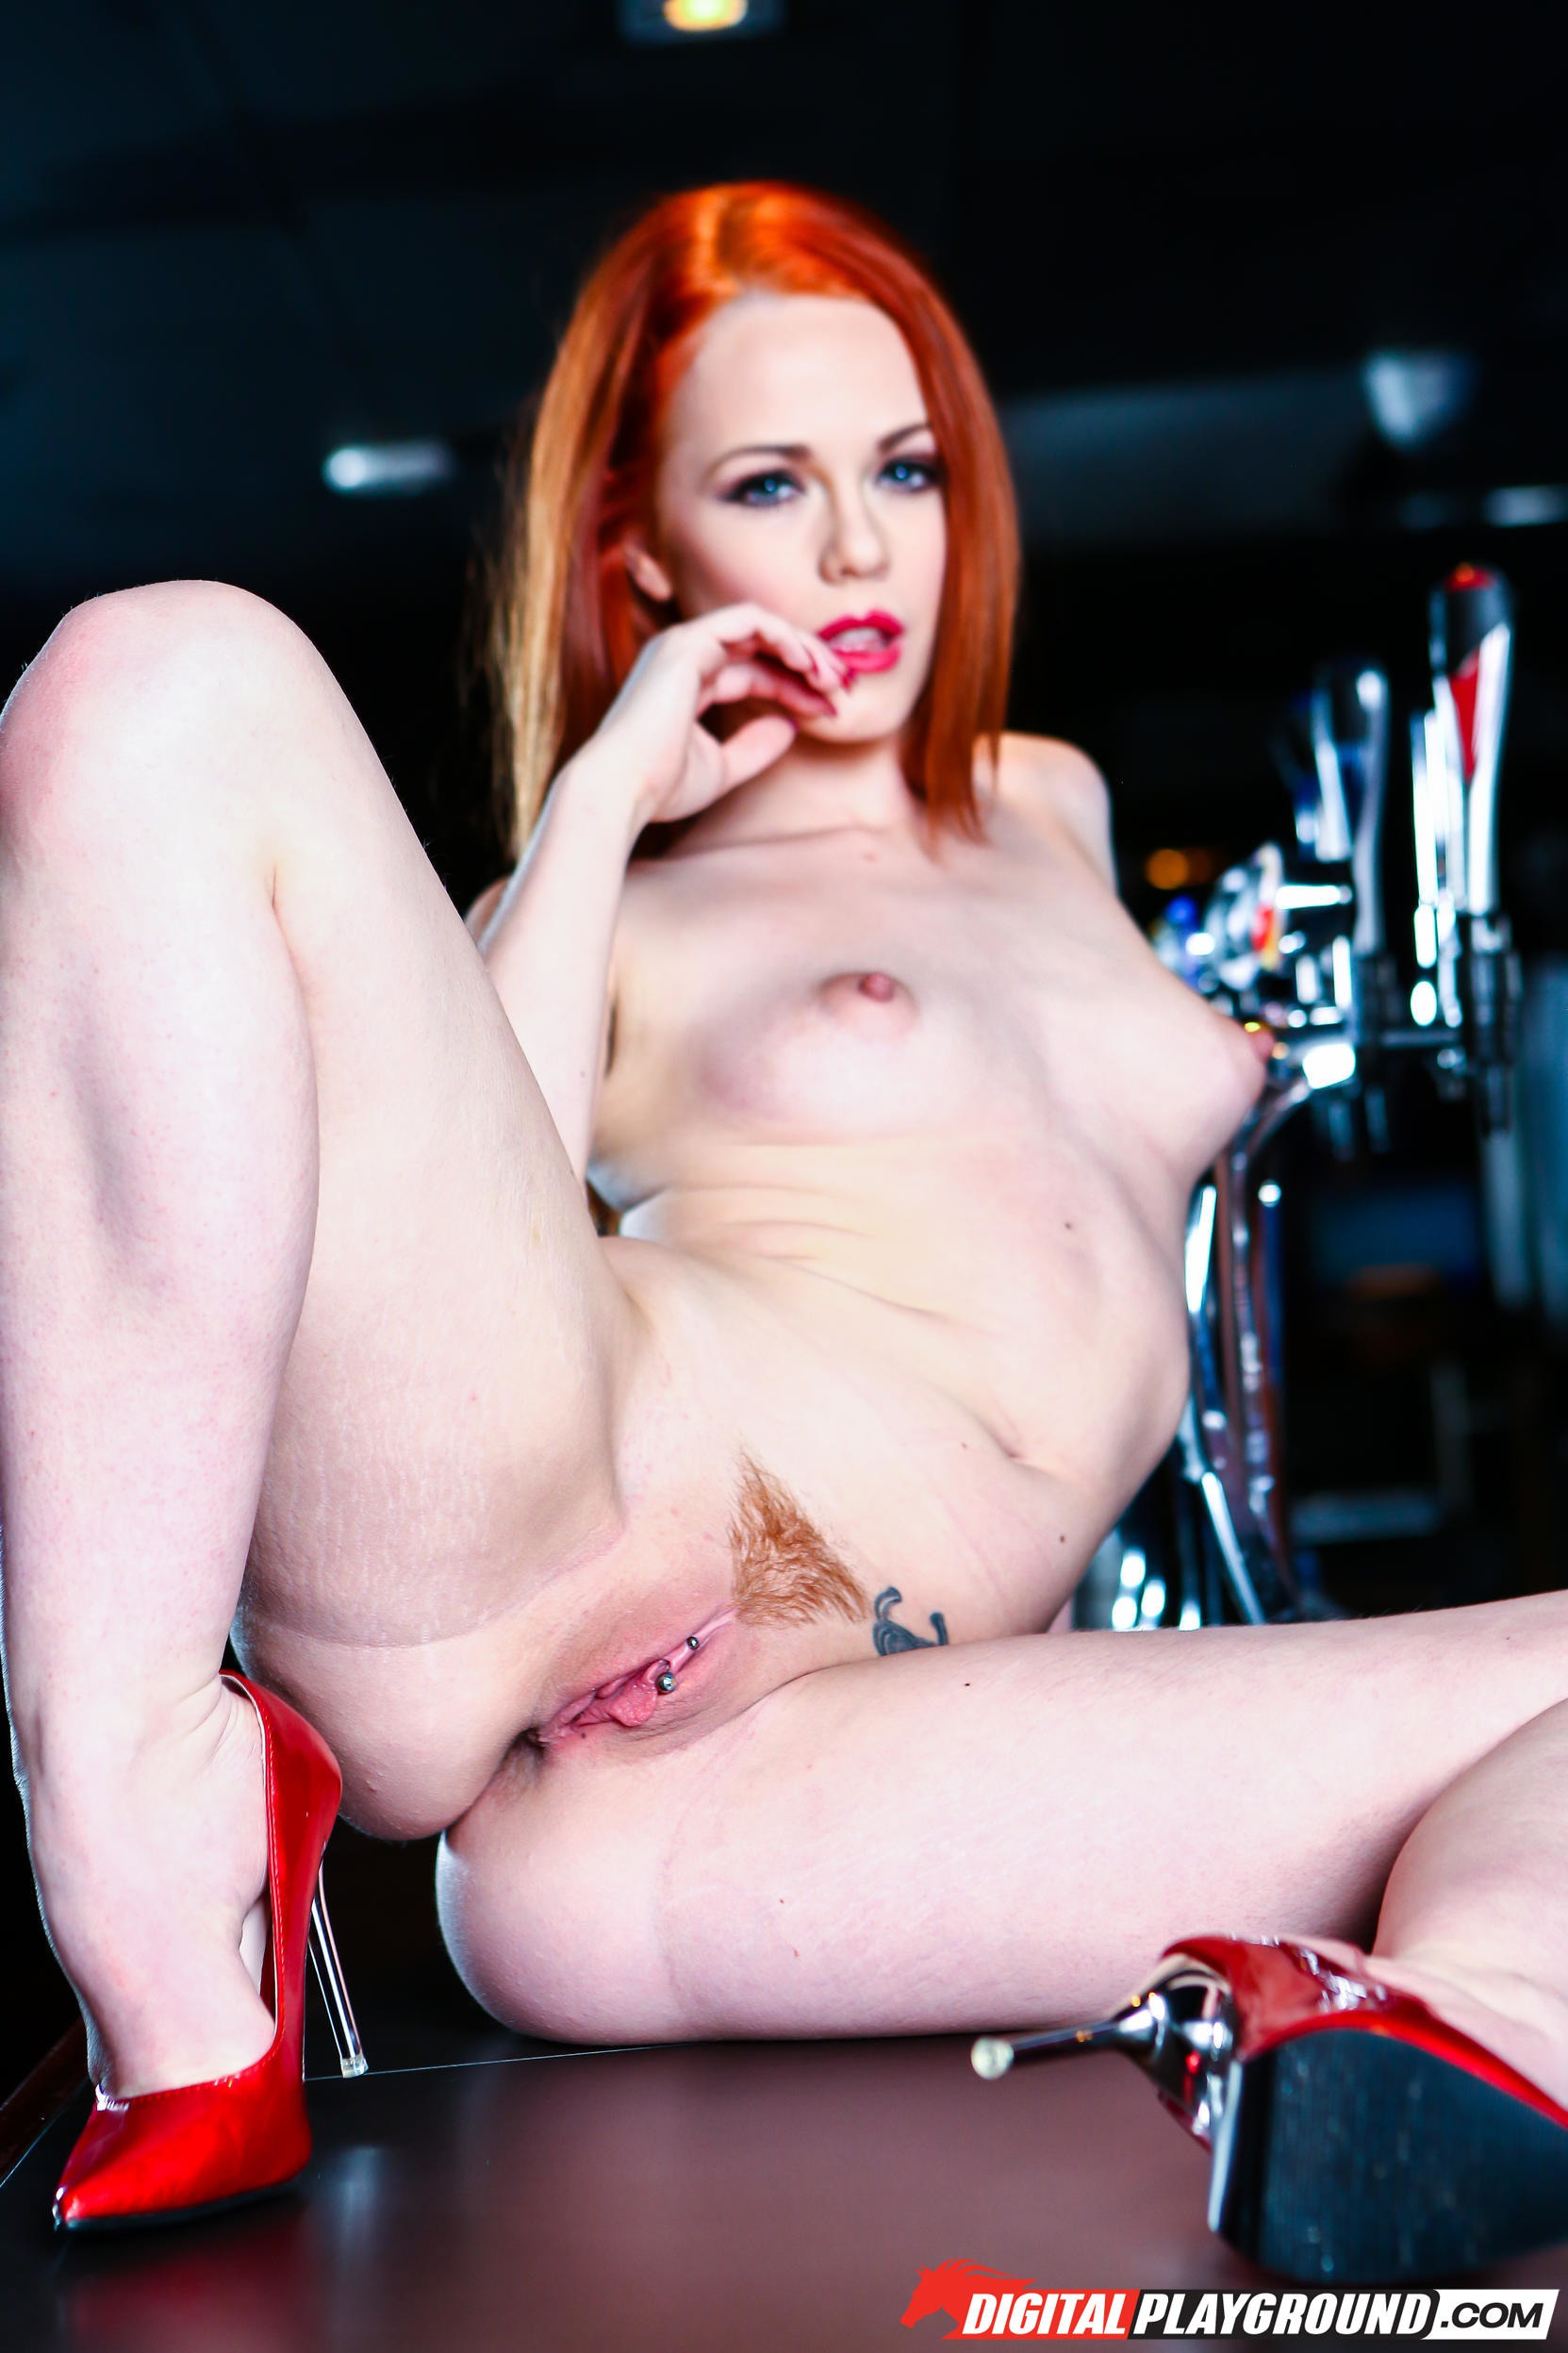 porn family guy in femdom action family guy porn Ella Hudges#pinkpussy #deliciouspussy #wetpussy #redhead #pierced #piercedpussy #lickablepussy #stockings #tattoed #HotWoman